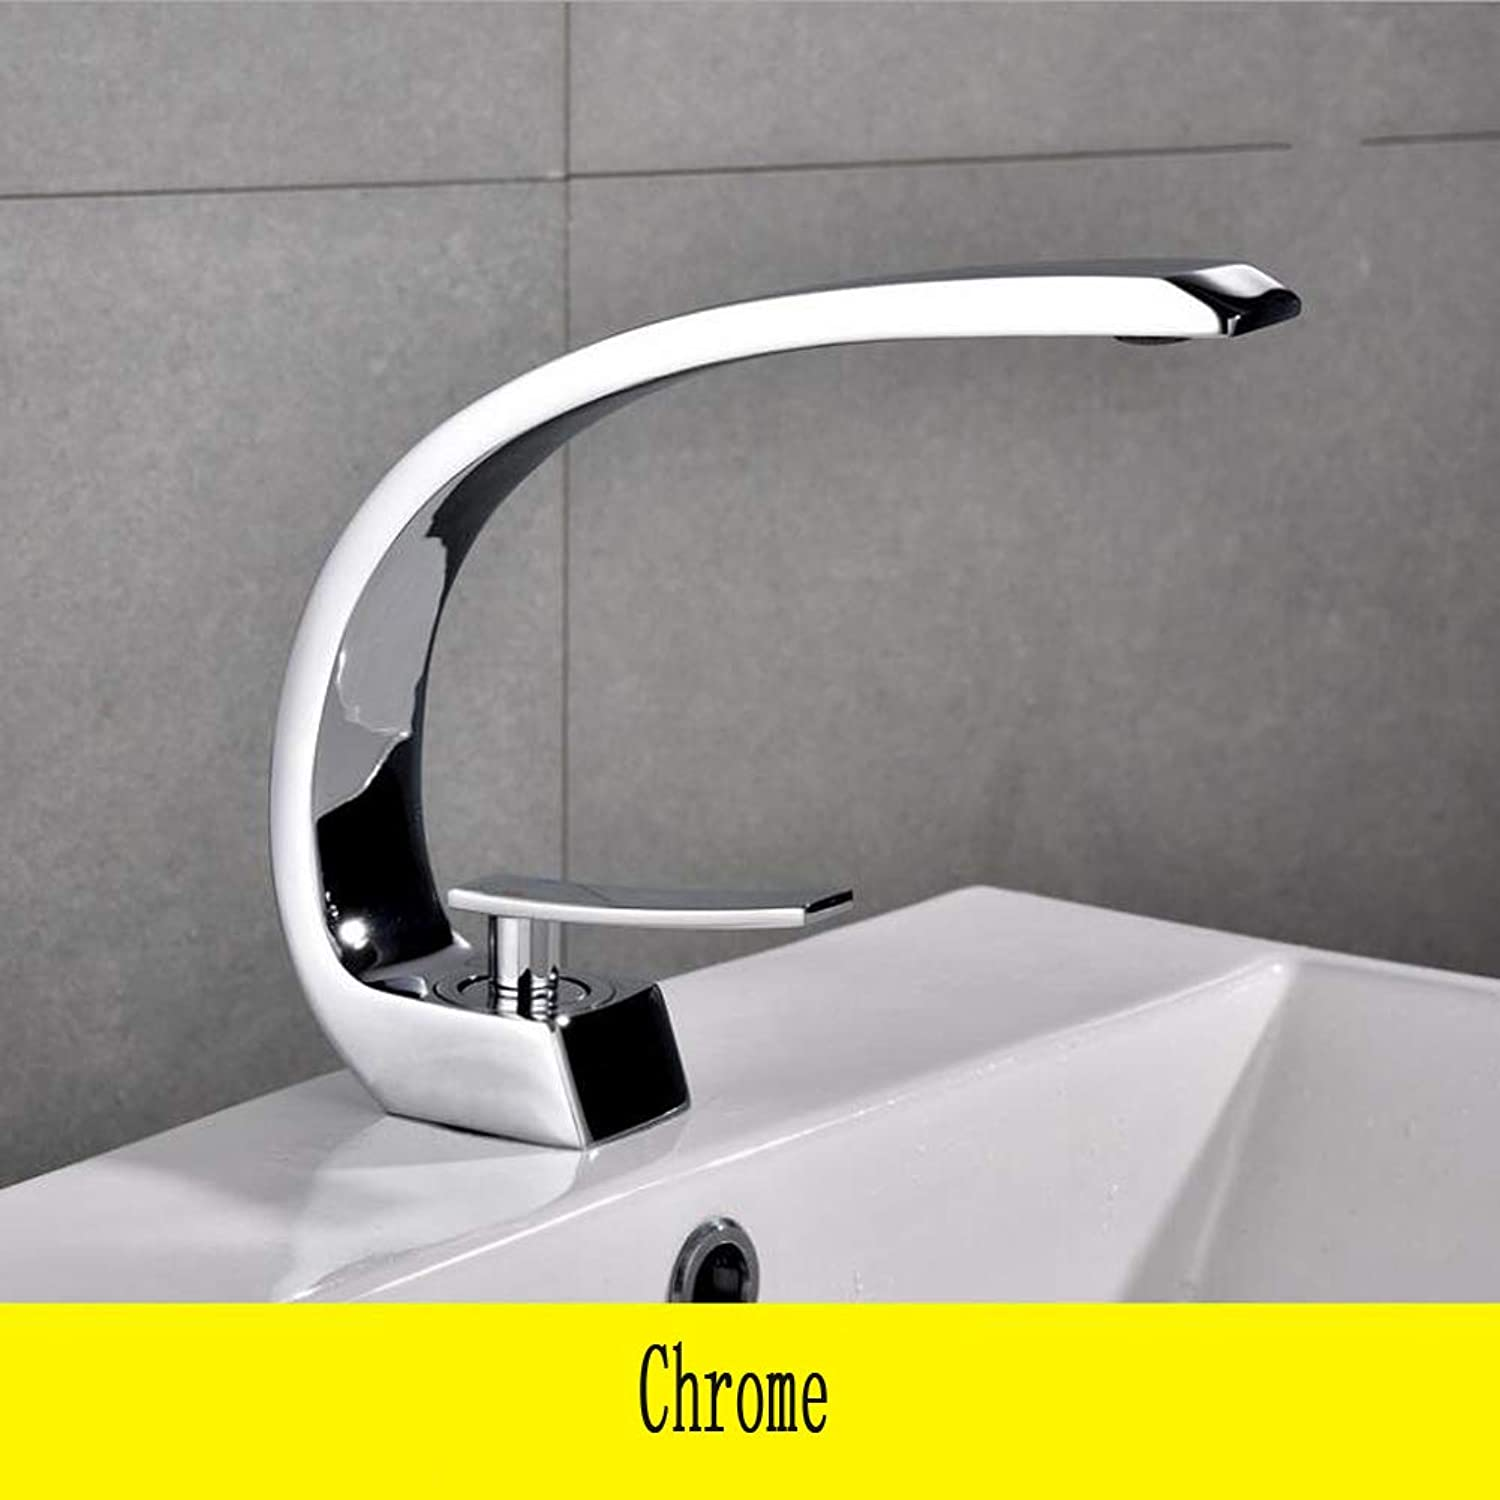 Black Large curved Hot And Cold Water Basin Faucet Modern Design Plating Bathroom Sink MixerTap Brass,Chrome,TypeC